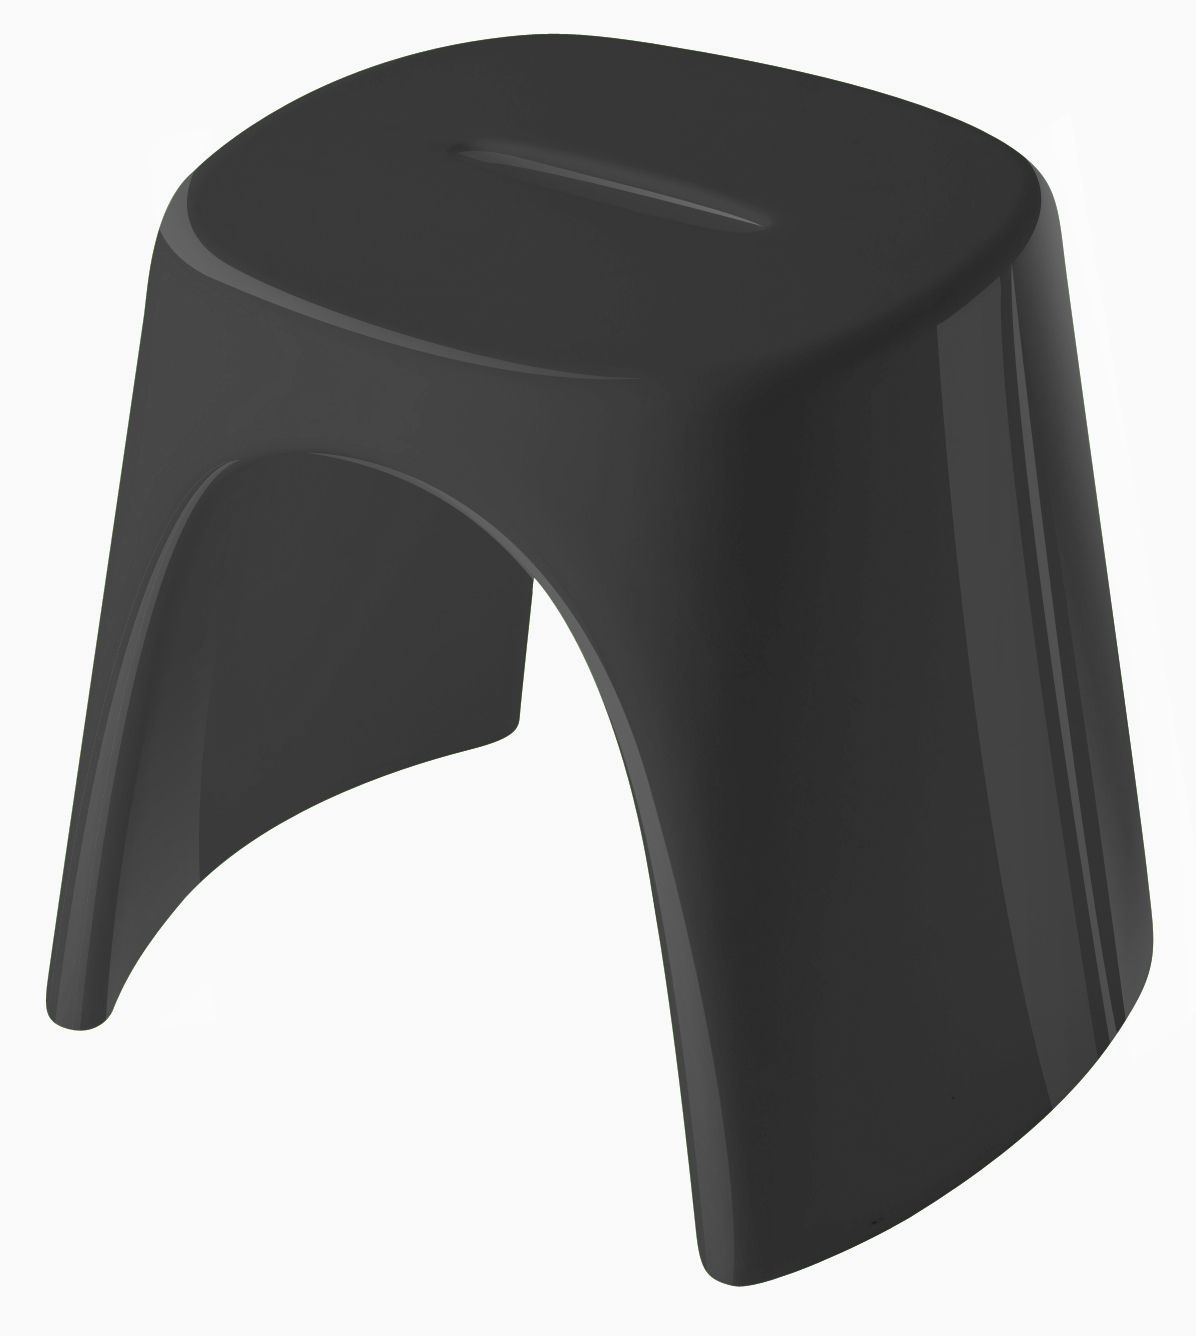 Furniture - Stools - Amélie Stackable stool - Lacquered version by Slide - Lacquered black - Lacquered polythene